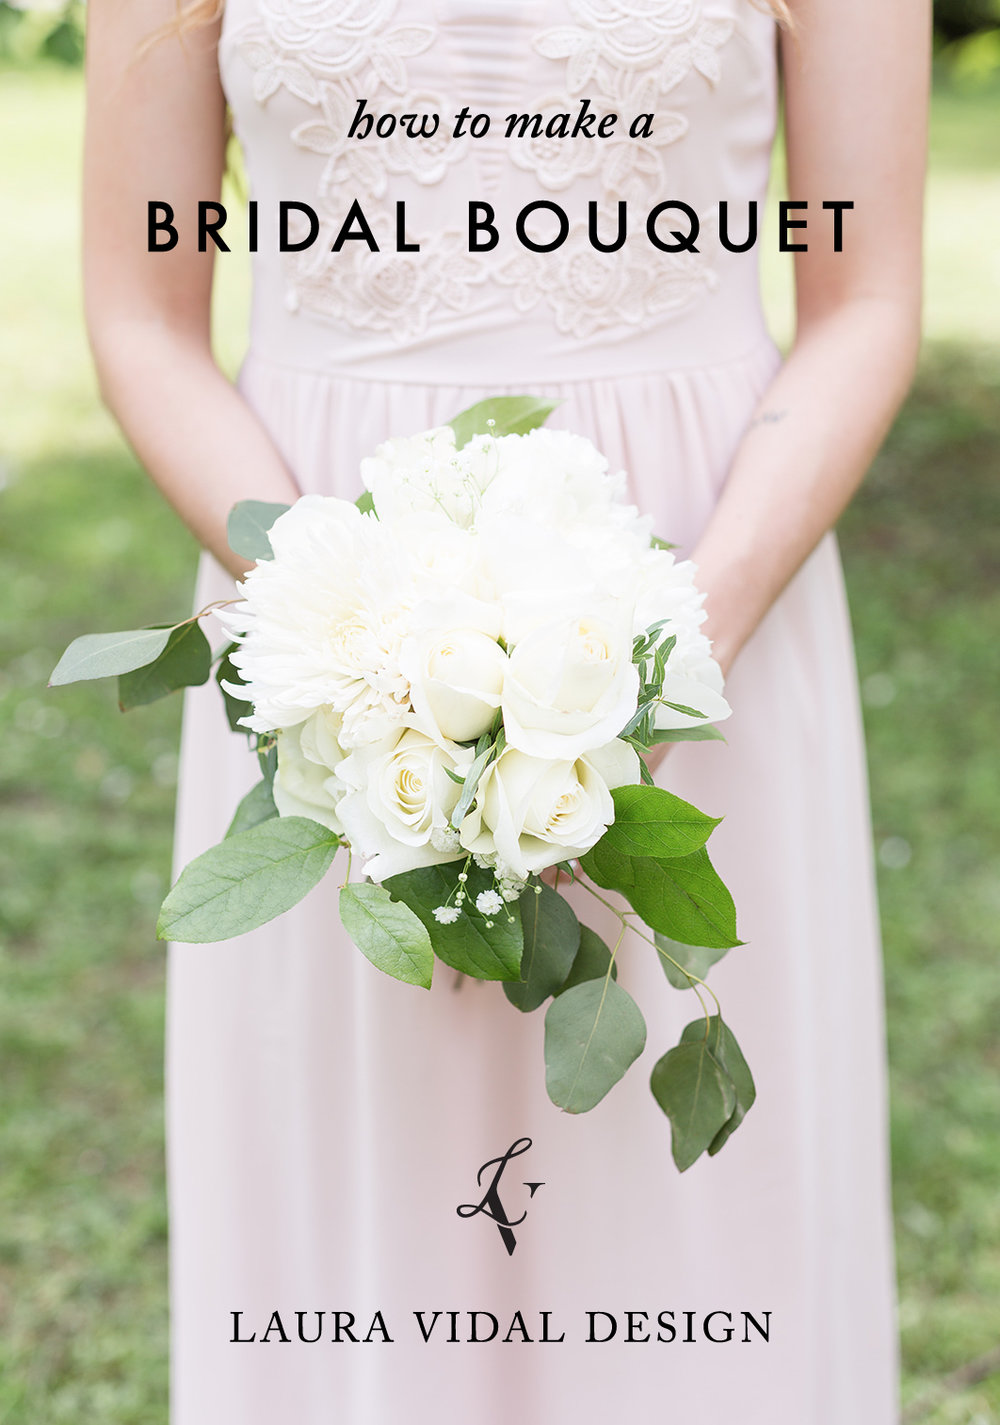 make-bridal-bouquet.jpg